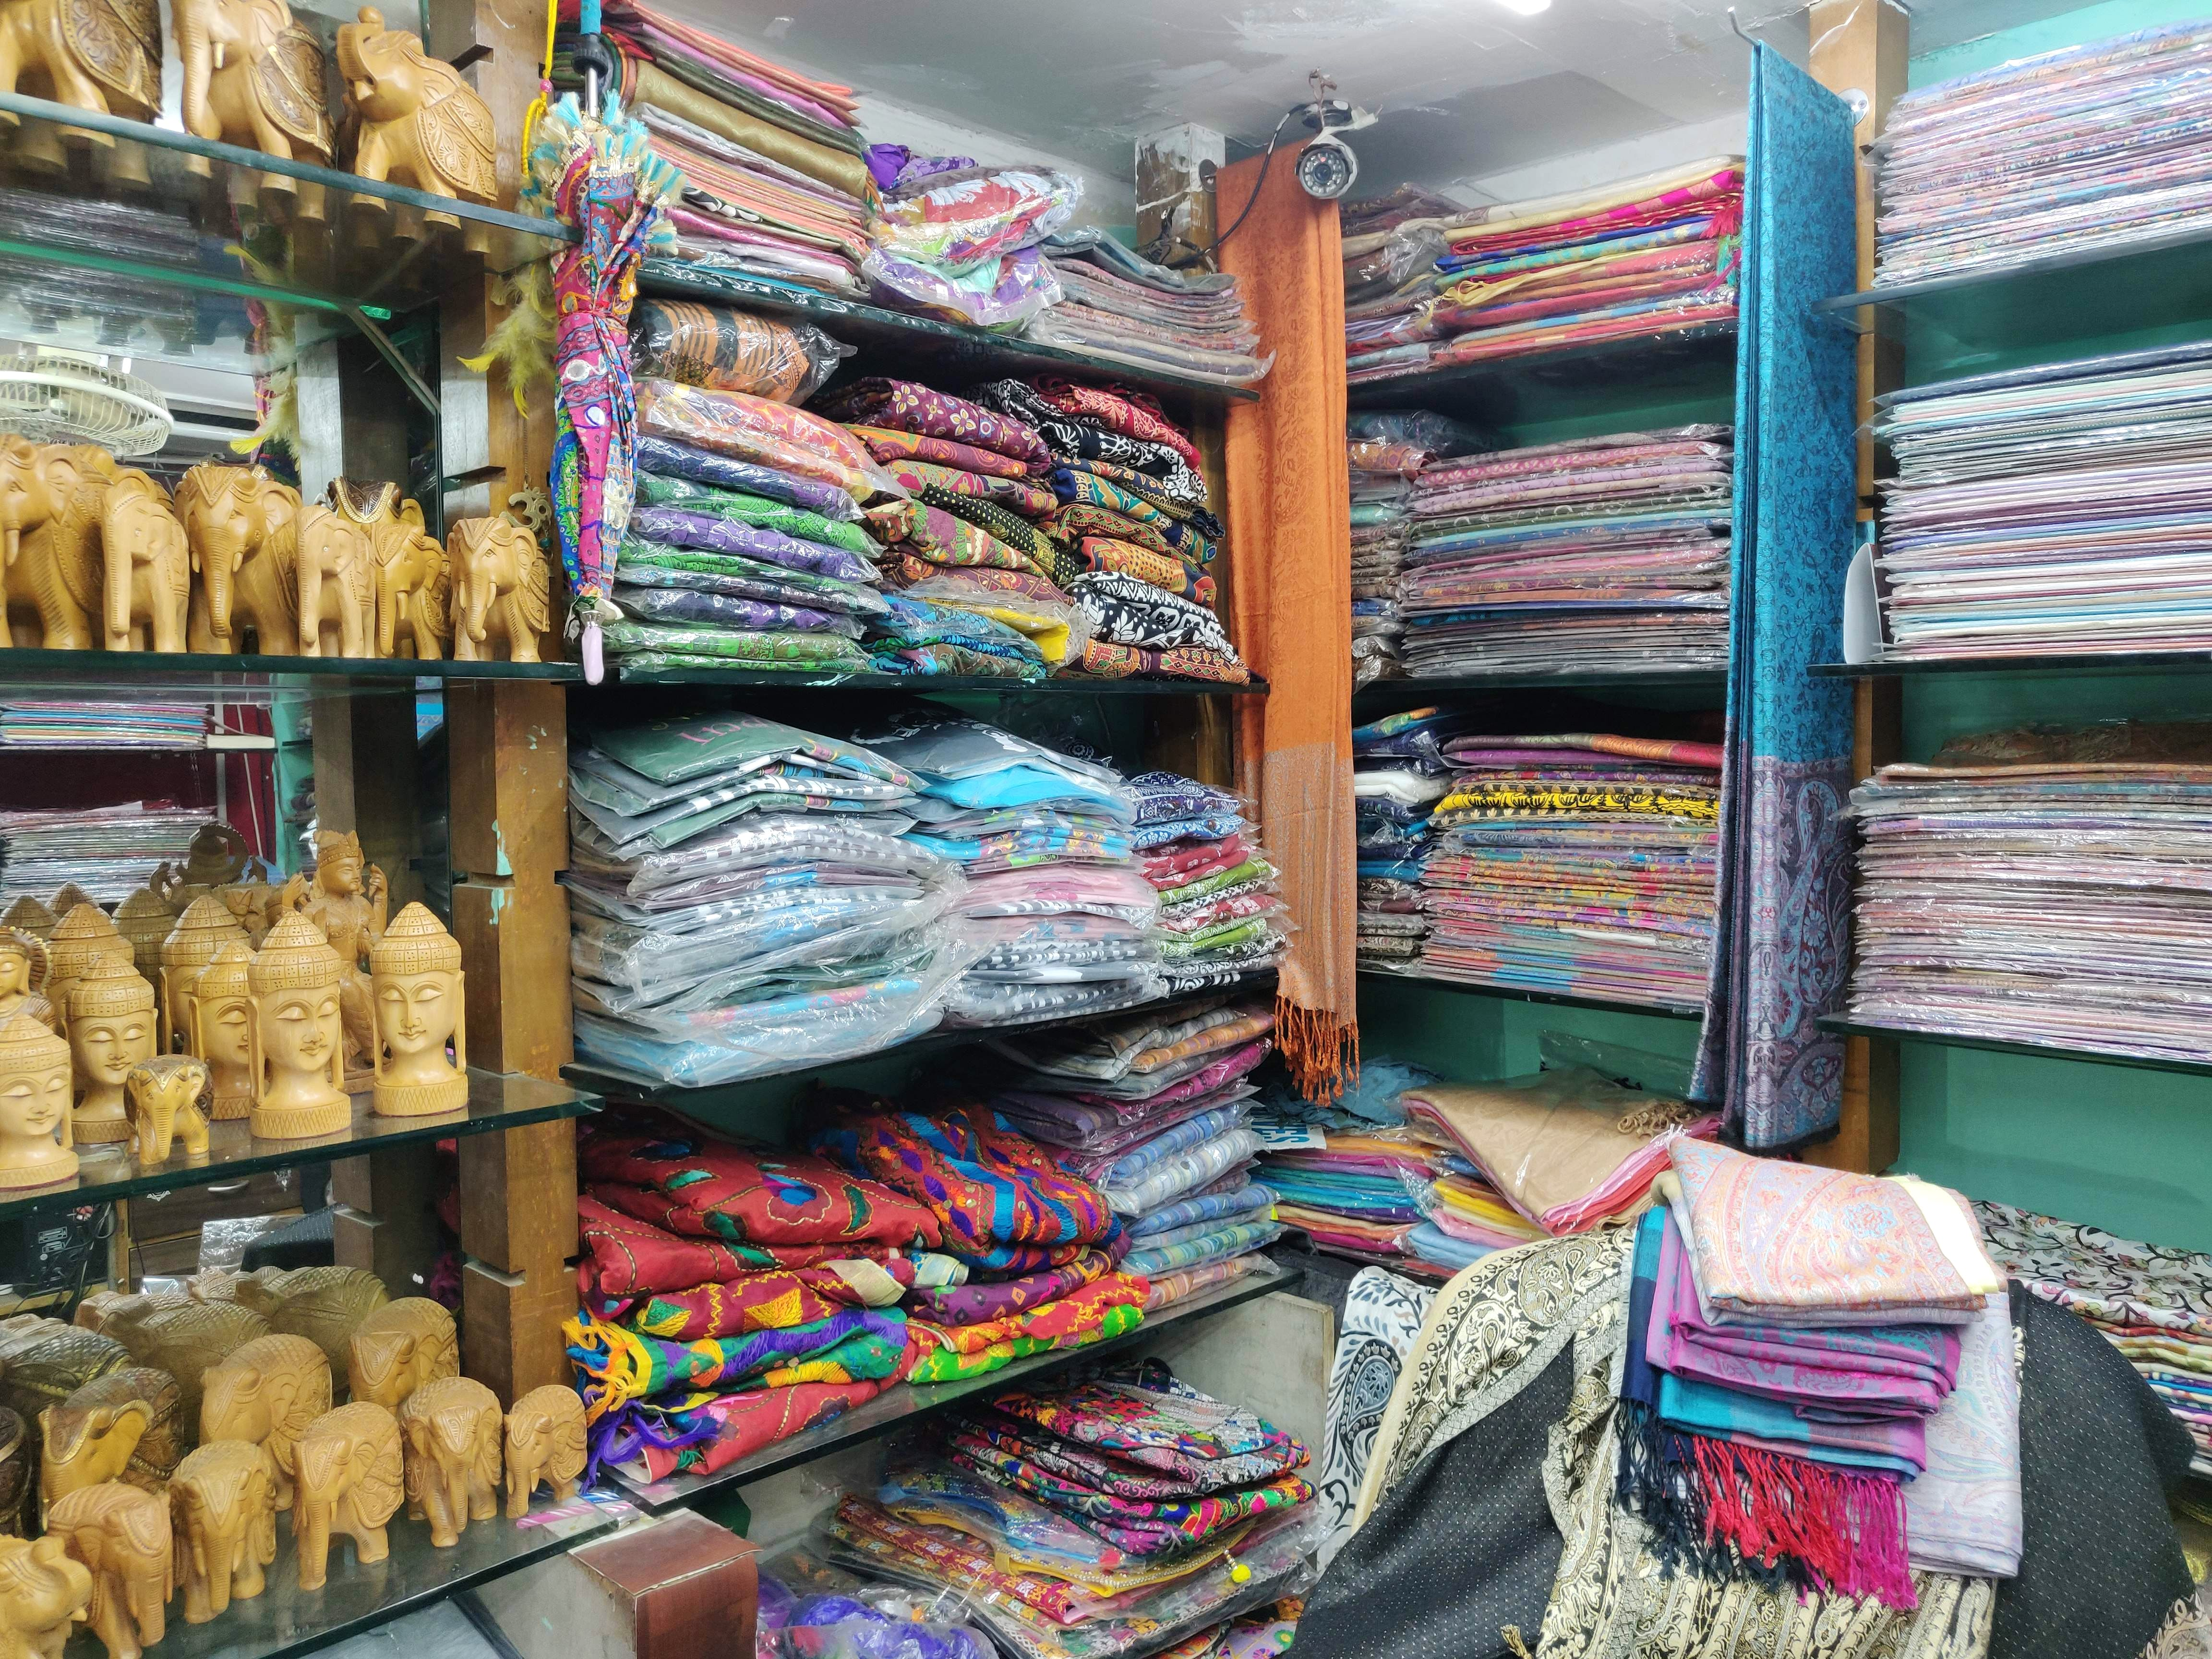 This shop in Brigade road has a variety of Pashmina shawls and you must visit!